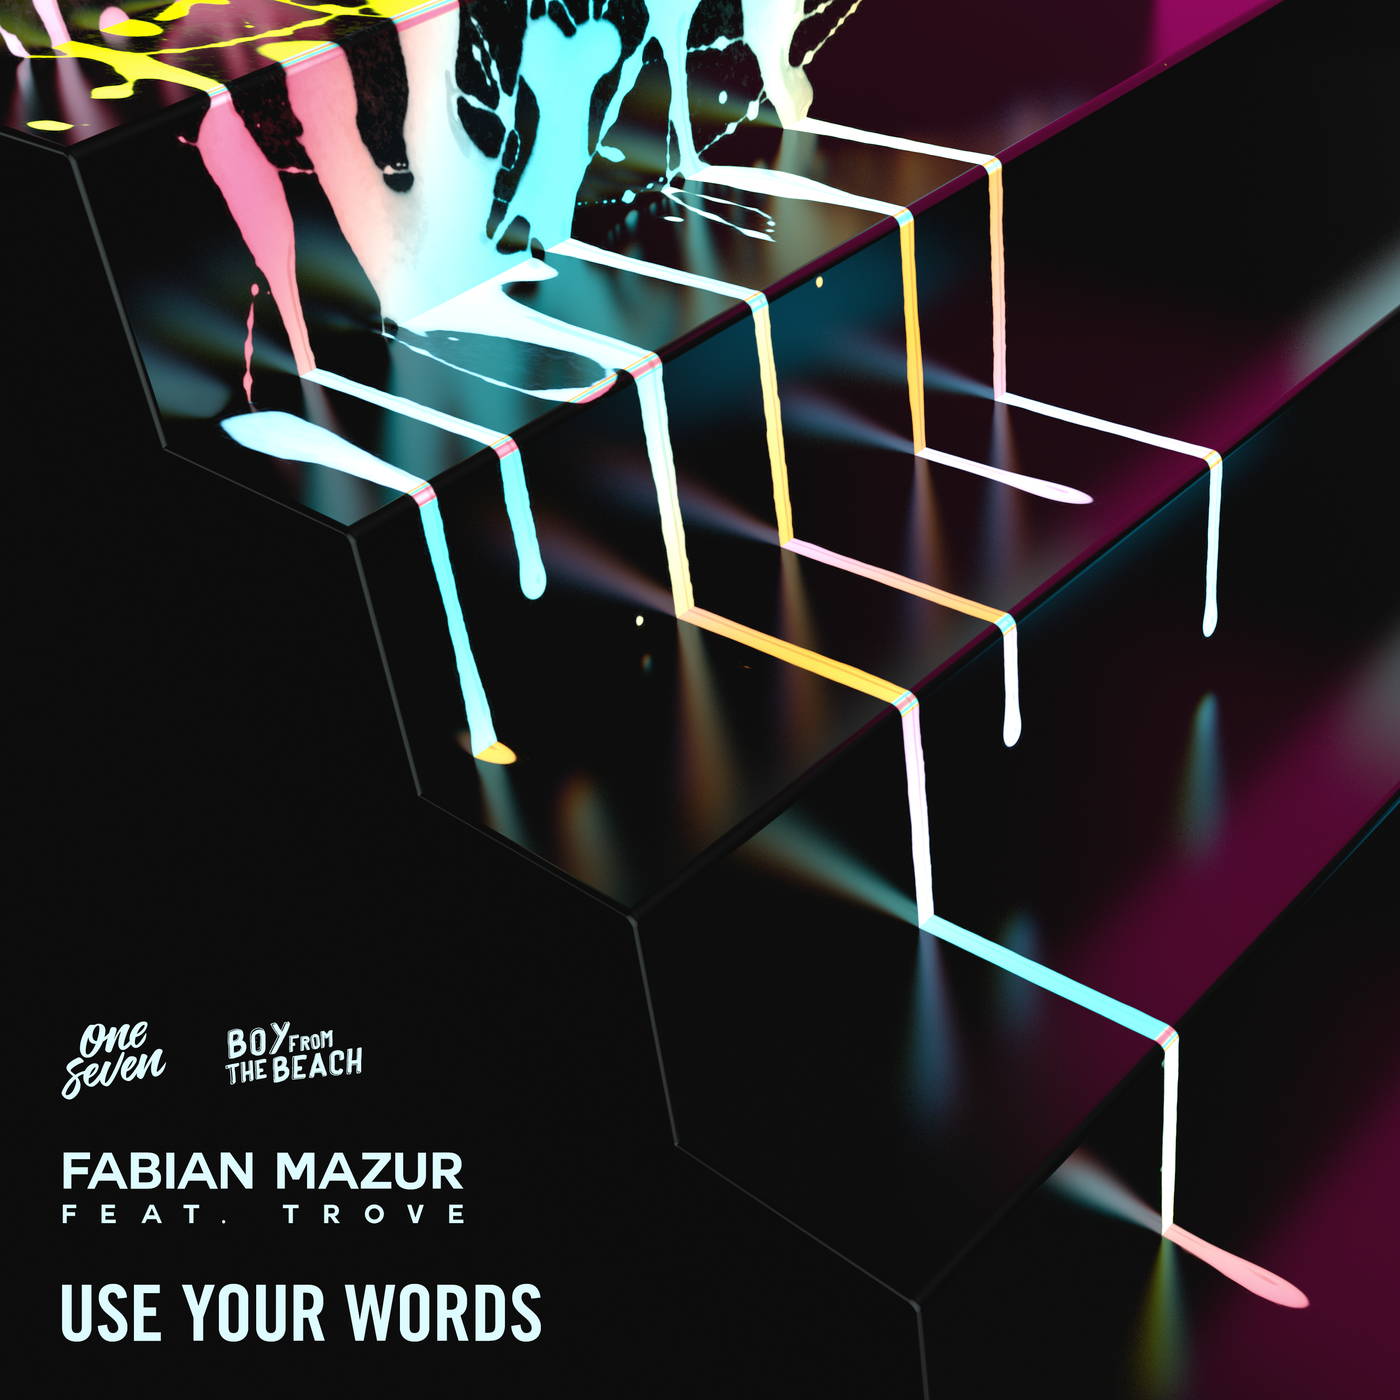 Use Your Words - Fabian Mazur